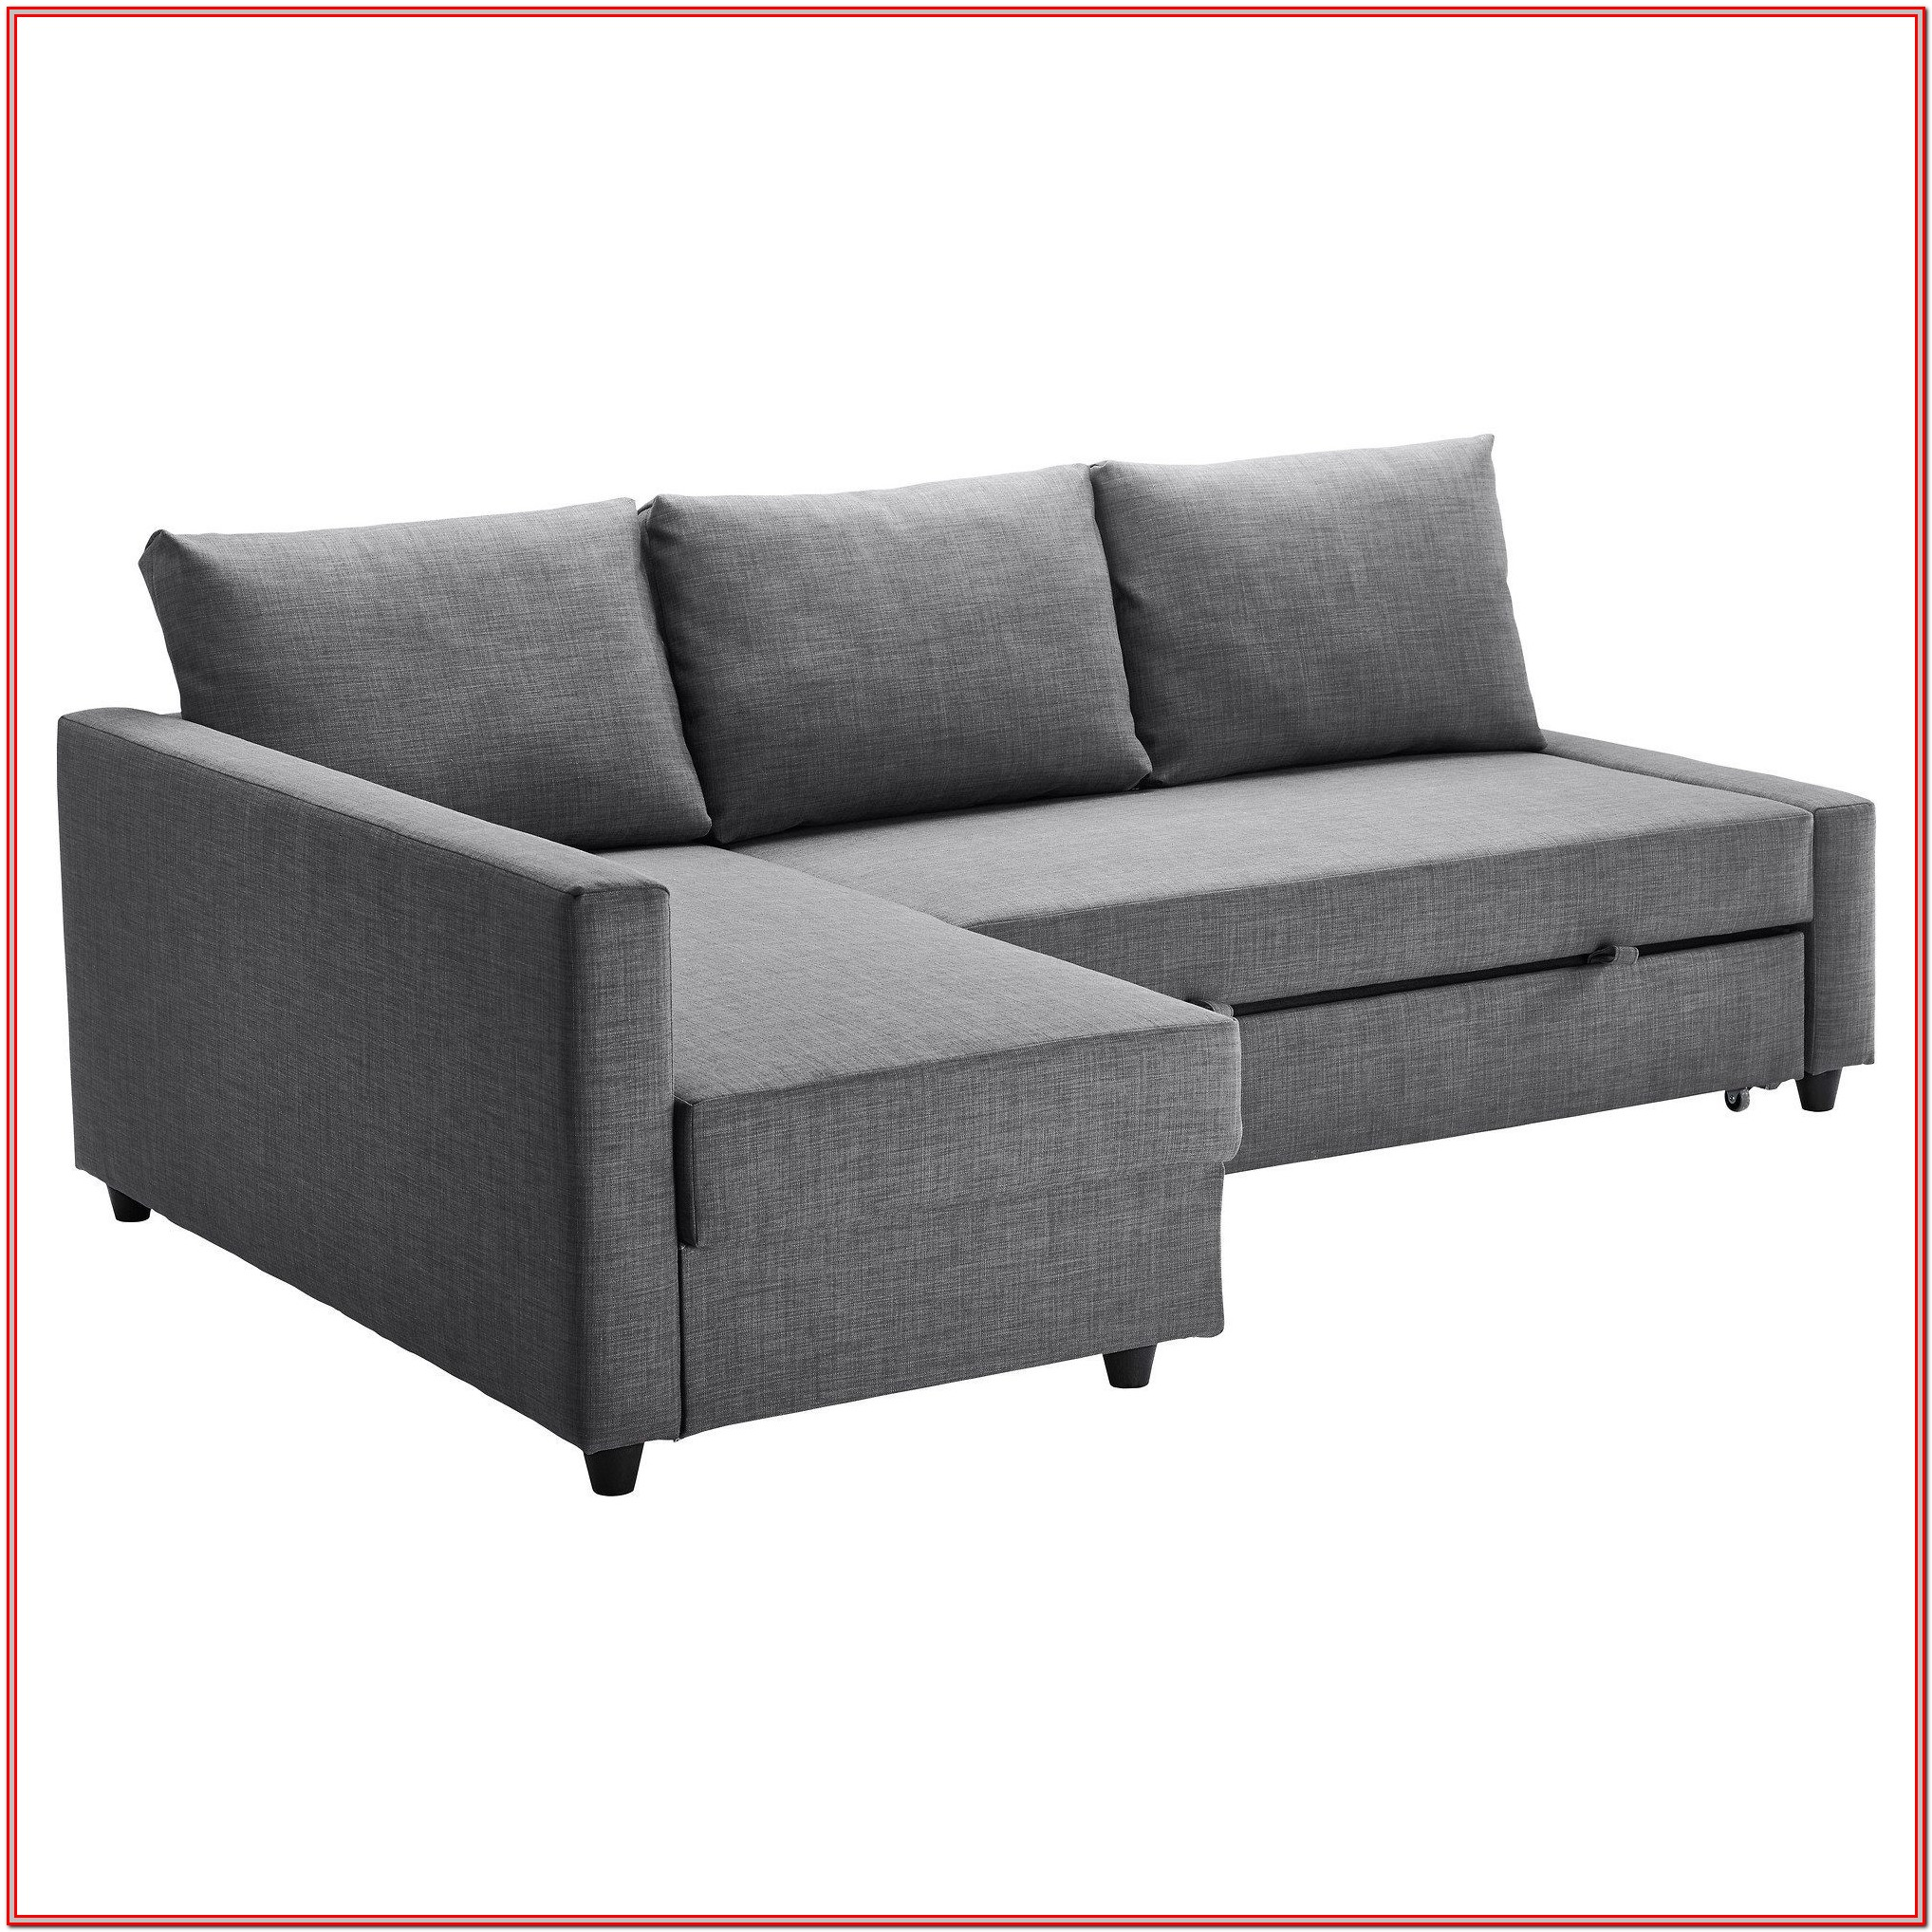 L Shaped Couch Bed Ikea